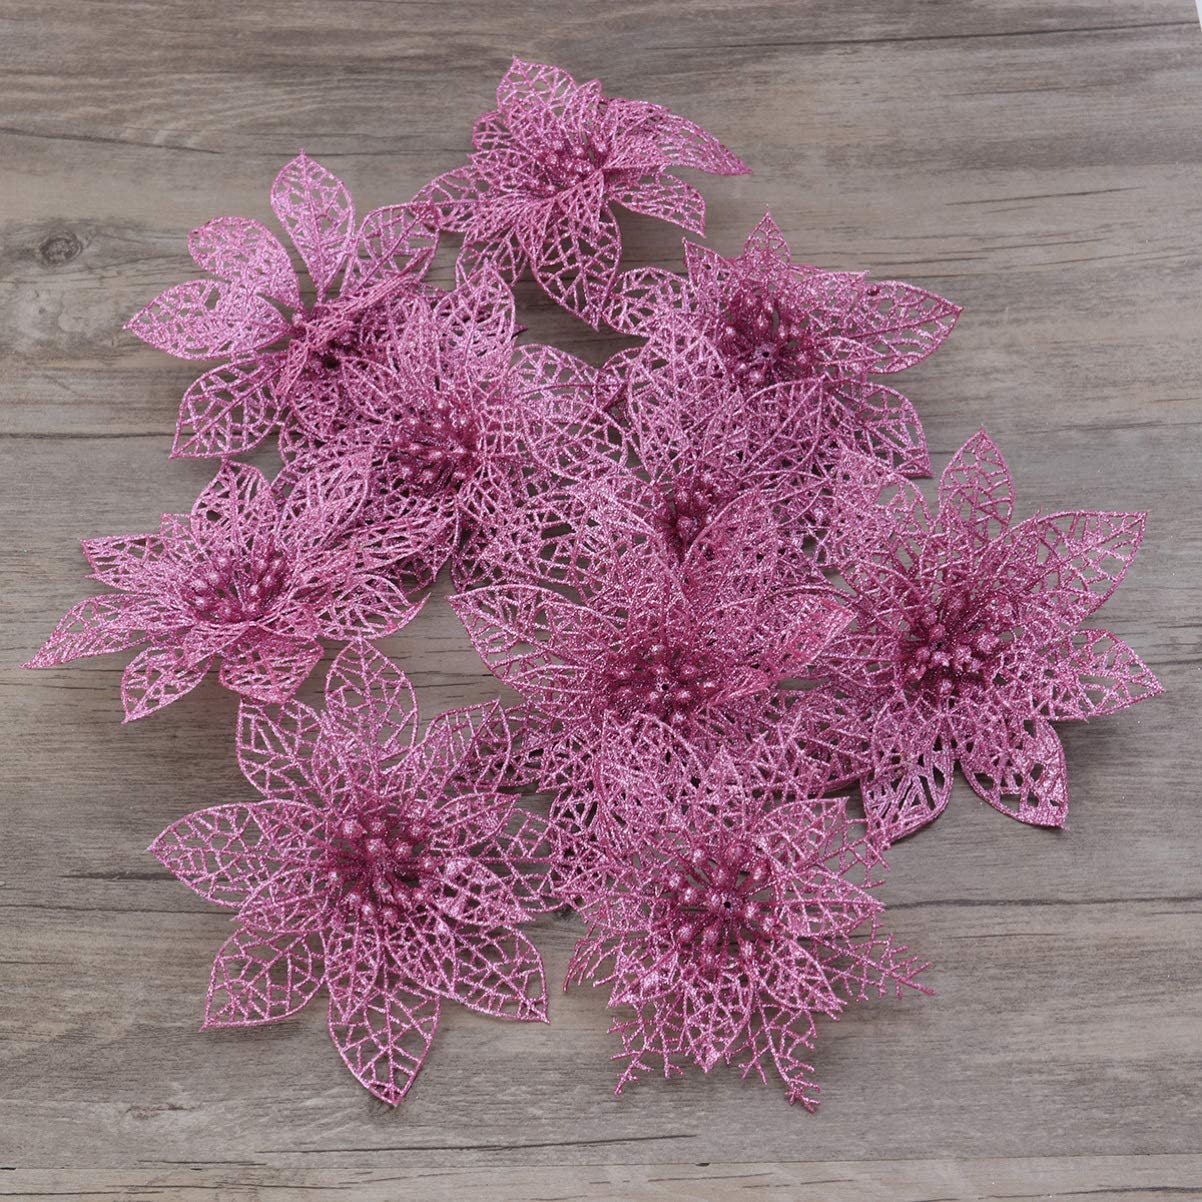 Pink NOBRANDED 10 Pieces Glitter Poinsettia Christmas Tree Ornament Christmas Flowers Decor Ornament